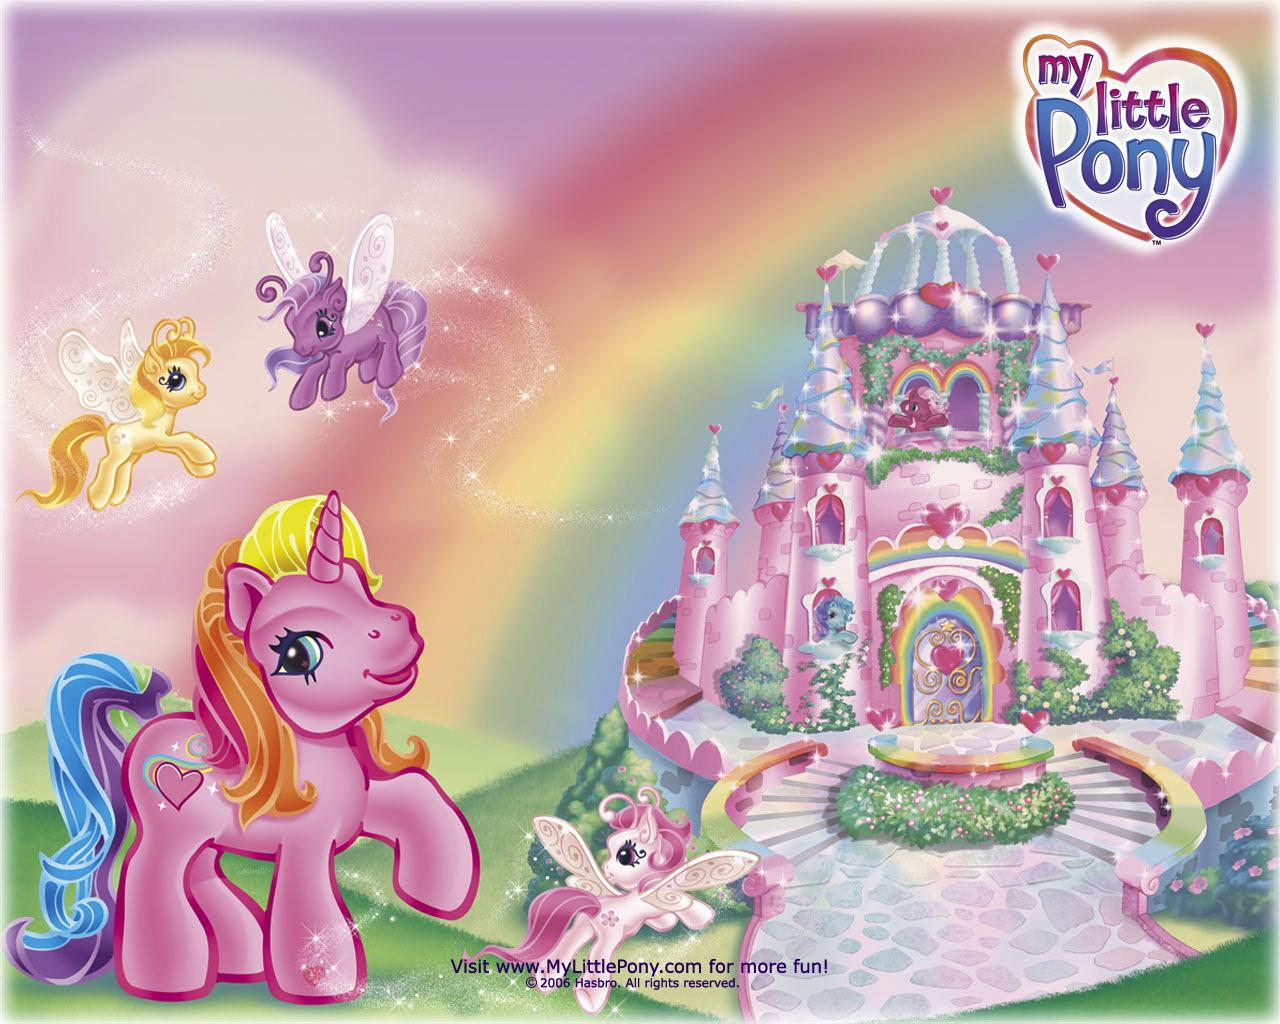 http://images.fanpop.com/images/image_uploads/My-Little-Pony-my-little-pony-256751_1280_1024.jpg